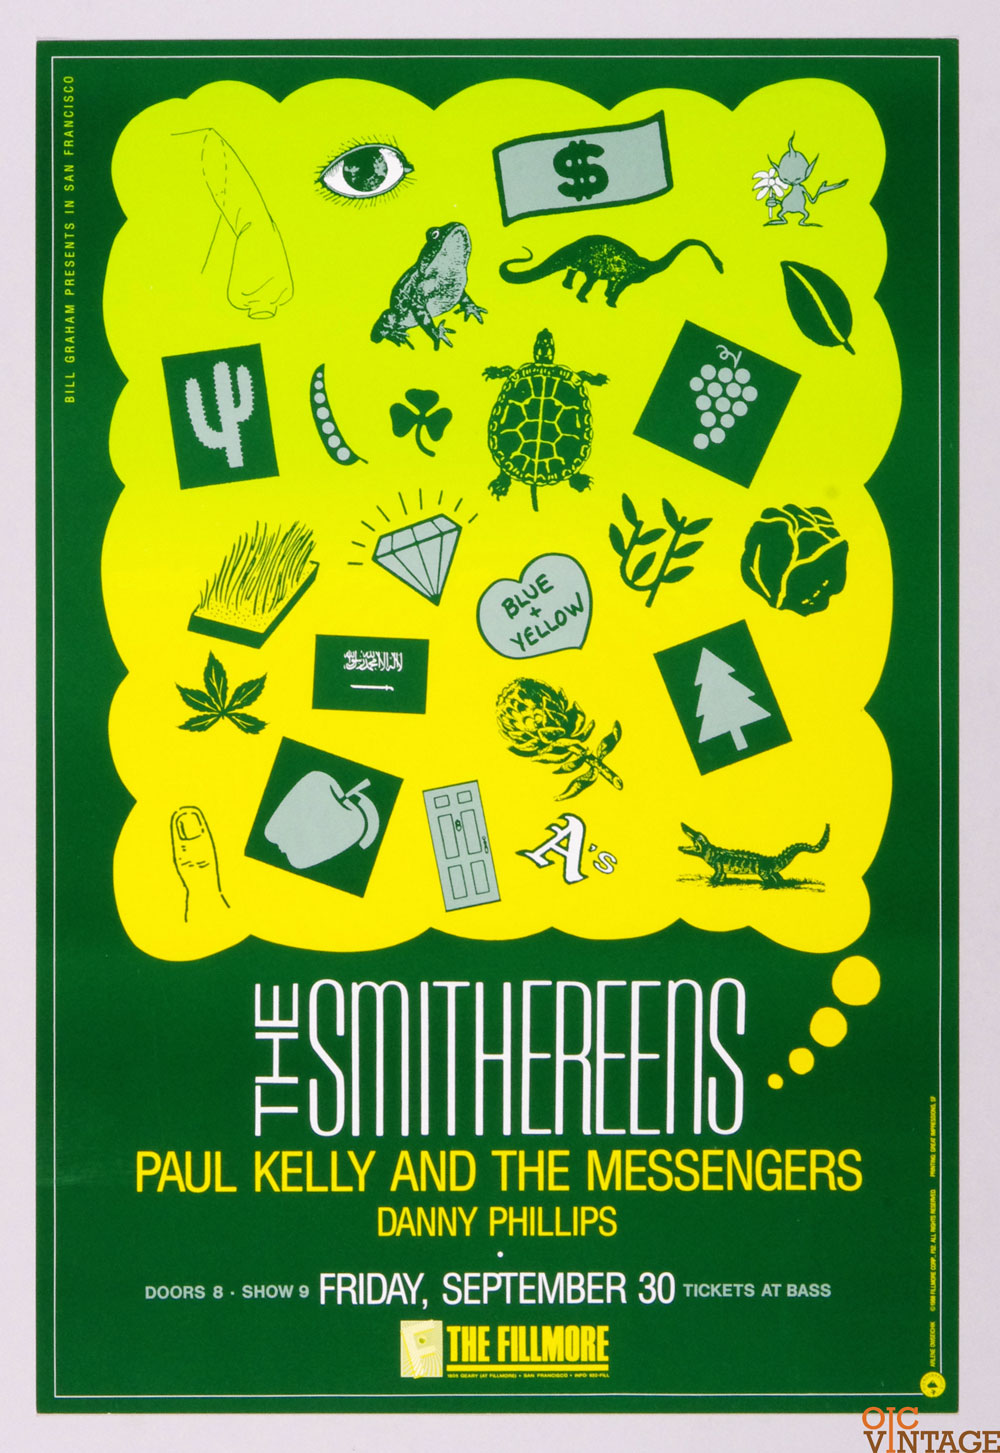 The Smithereens Paul Kelly and the Messenger Poster 1988 Sep 30 New Fillmore